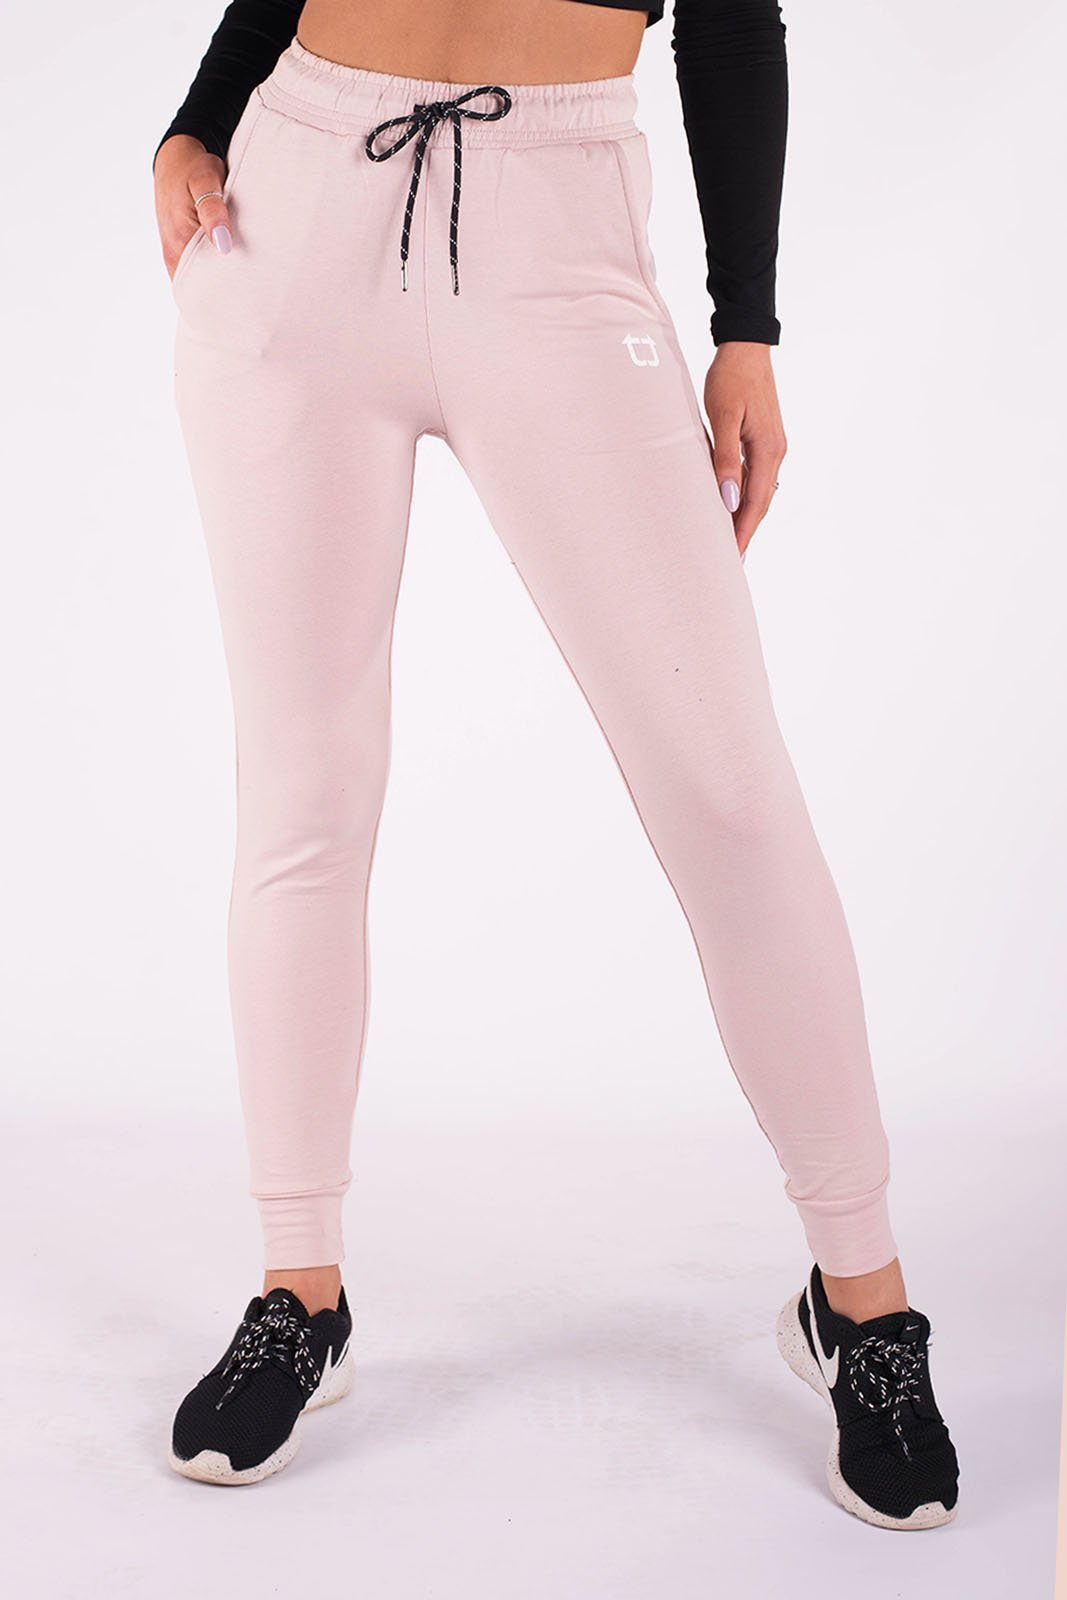 Twotags Ladies Highwaisted Original Jogger – Blush